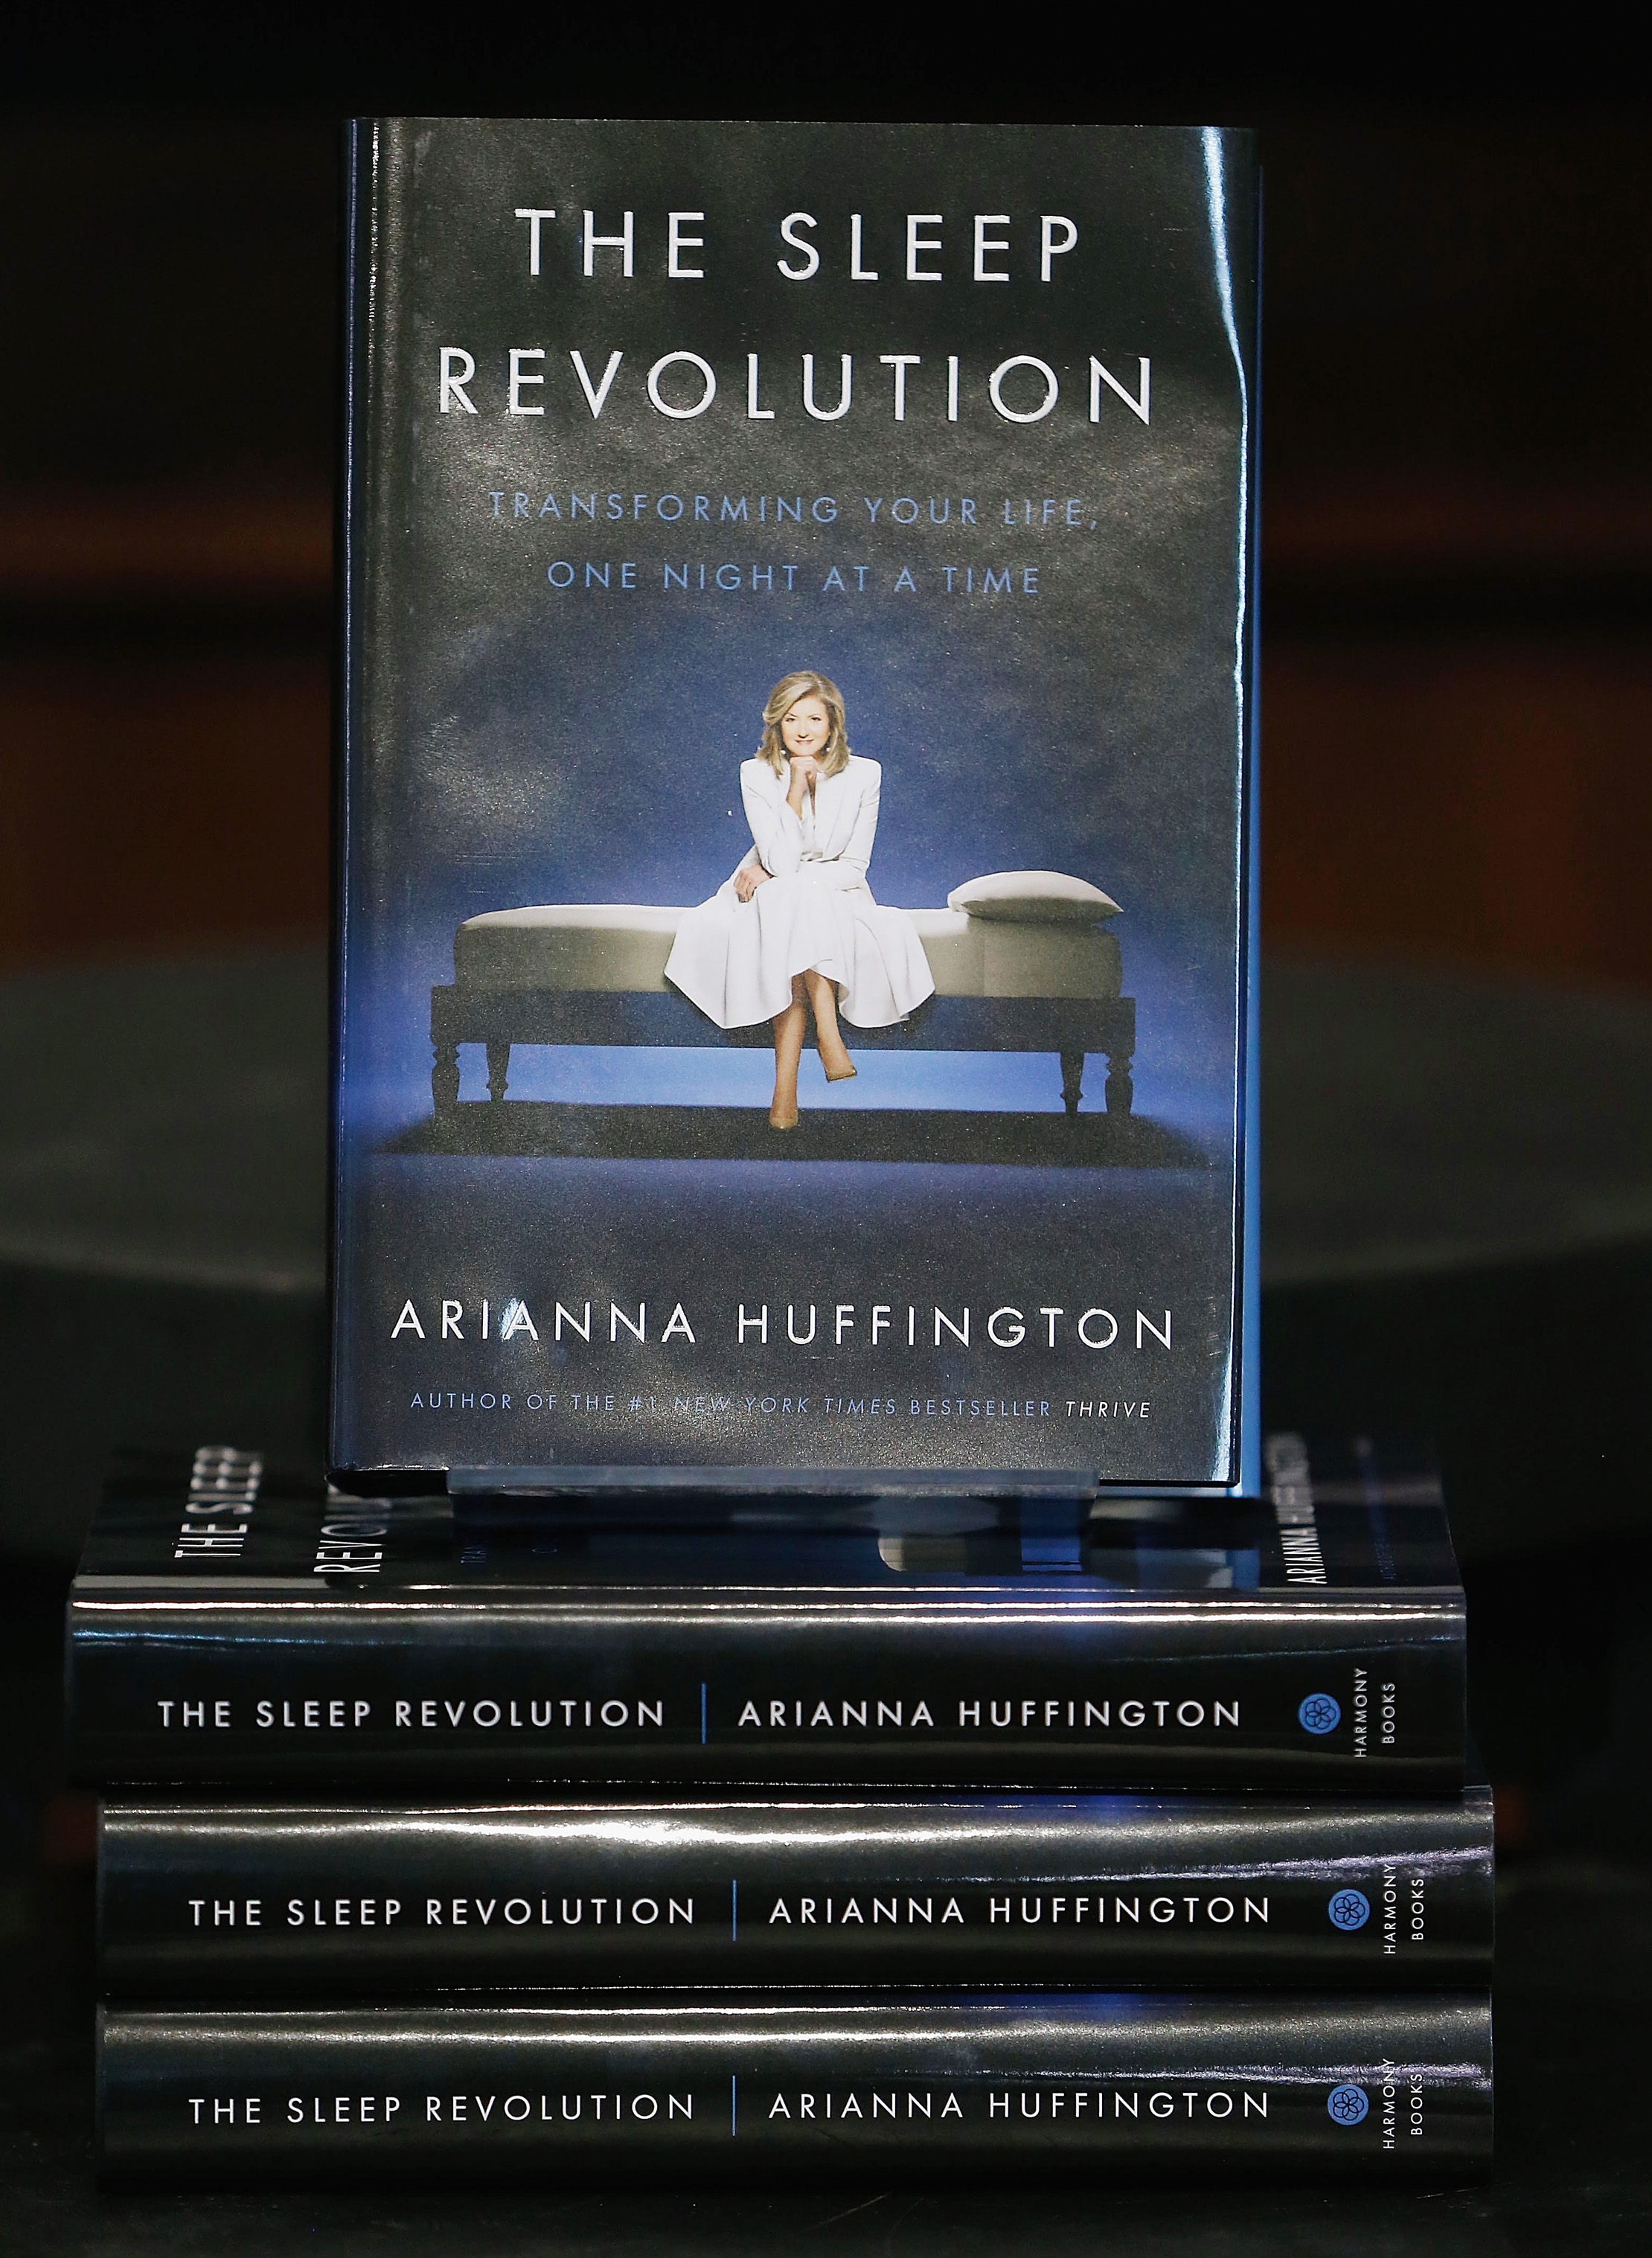 Arianna Huffington's 'The Sleep Revolution: Transforming Your Life, One Night At A Time'